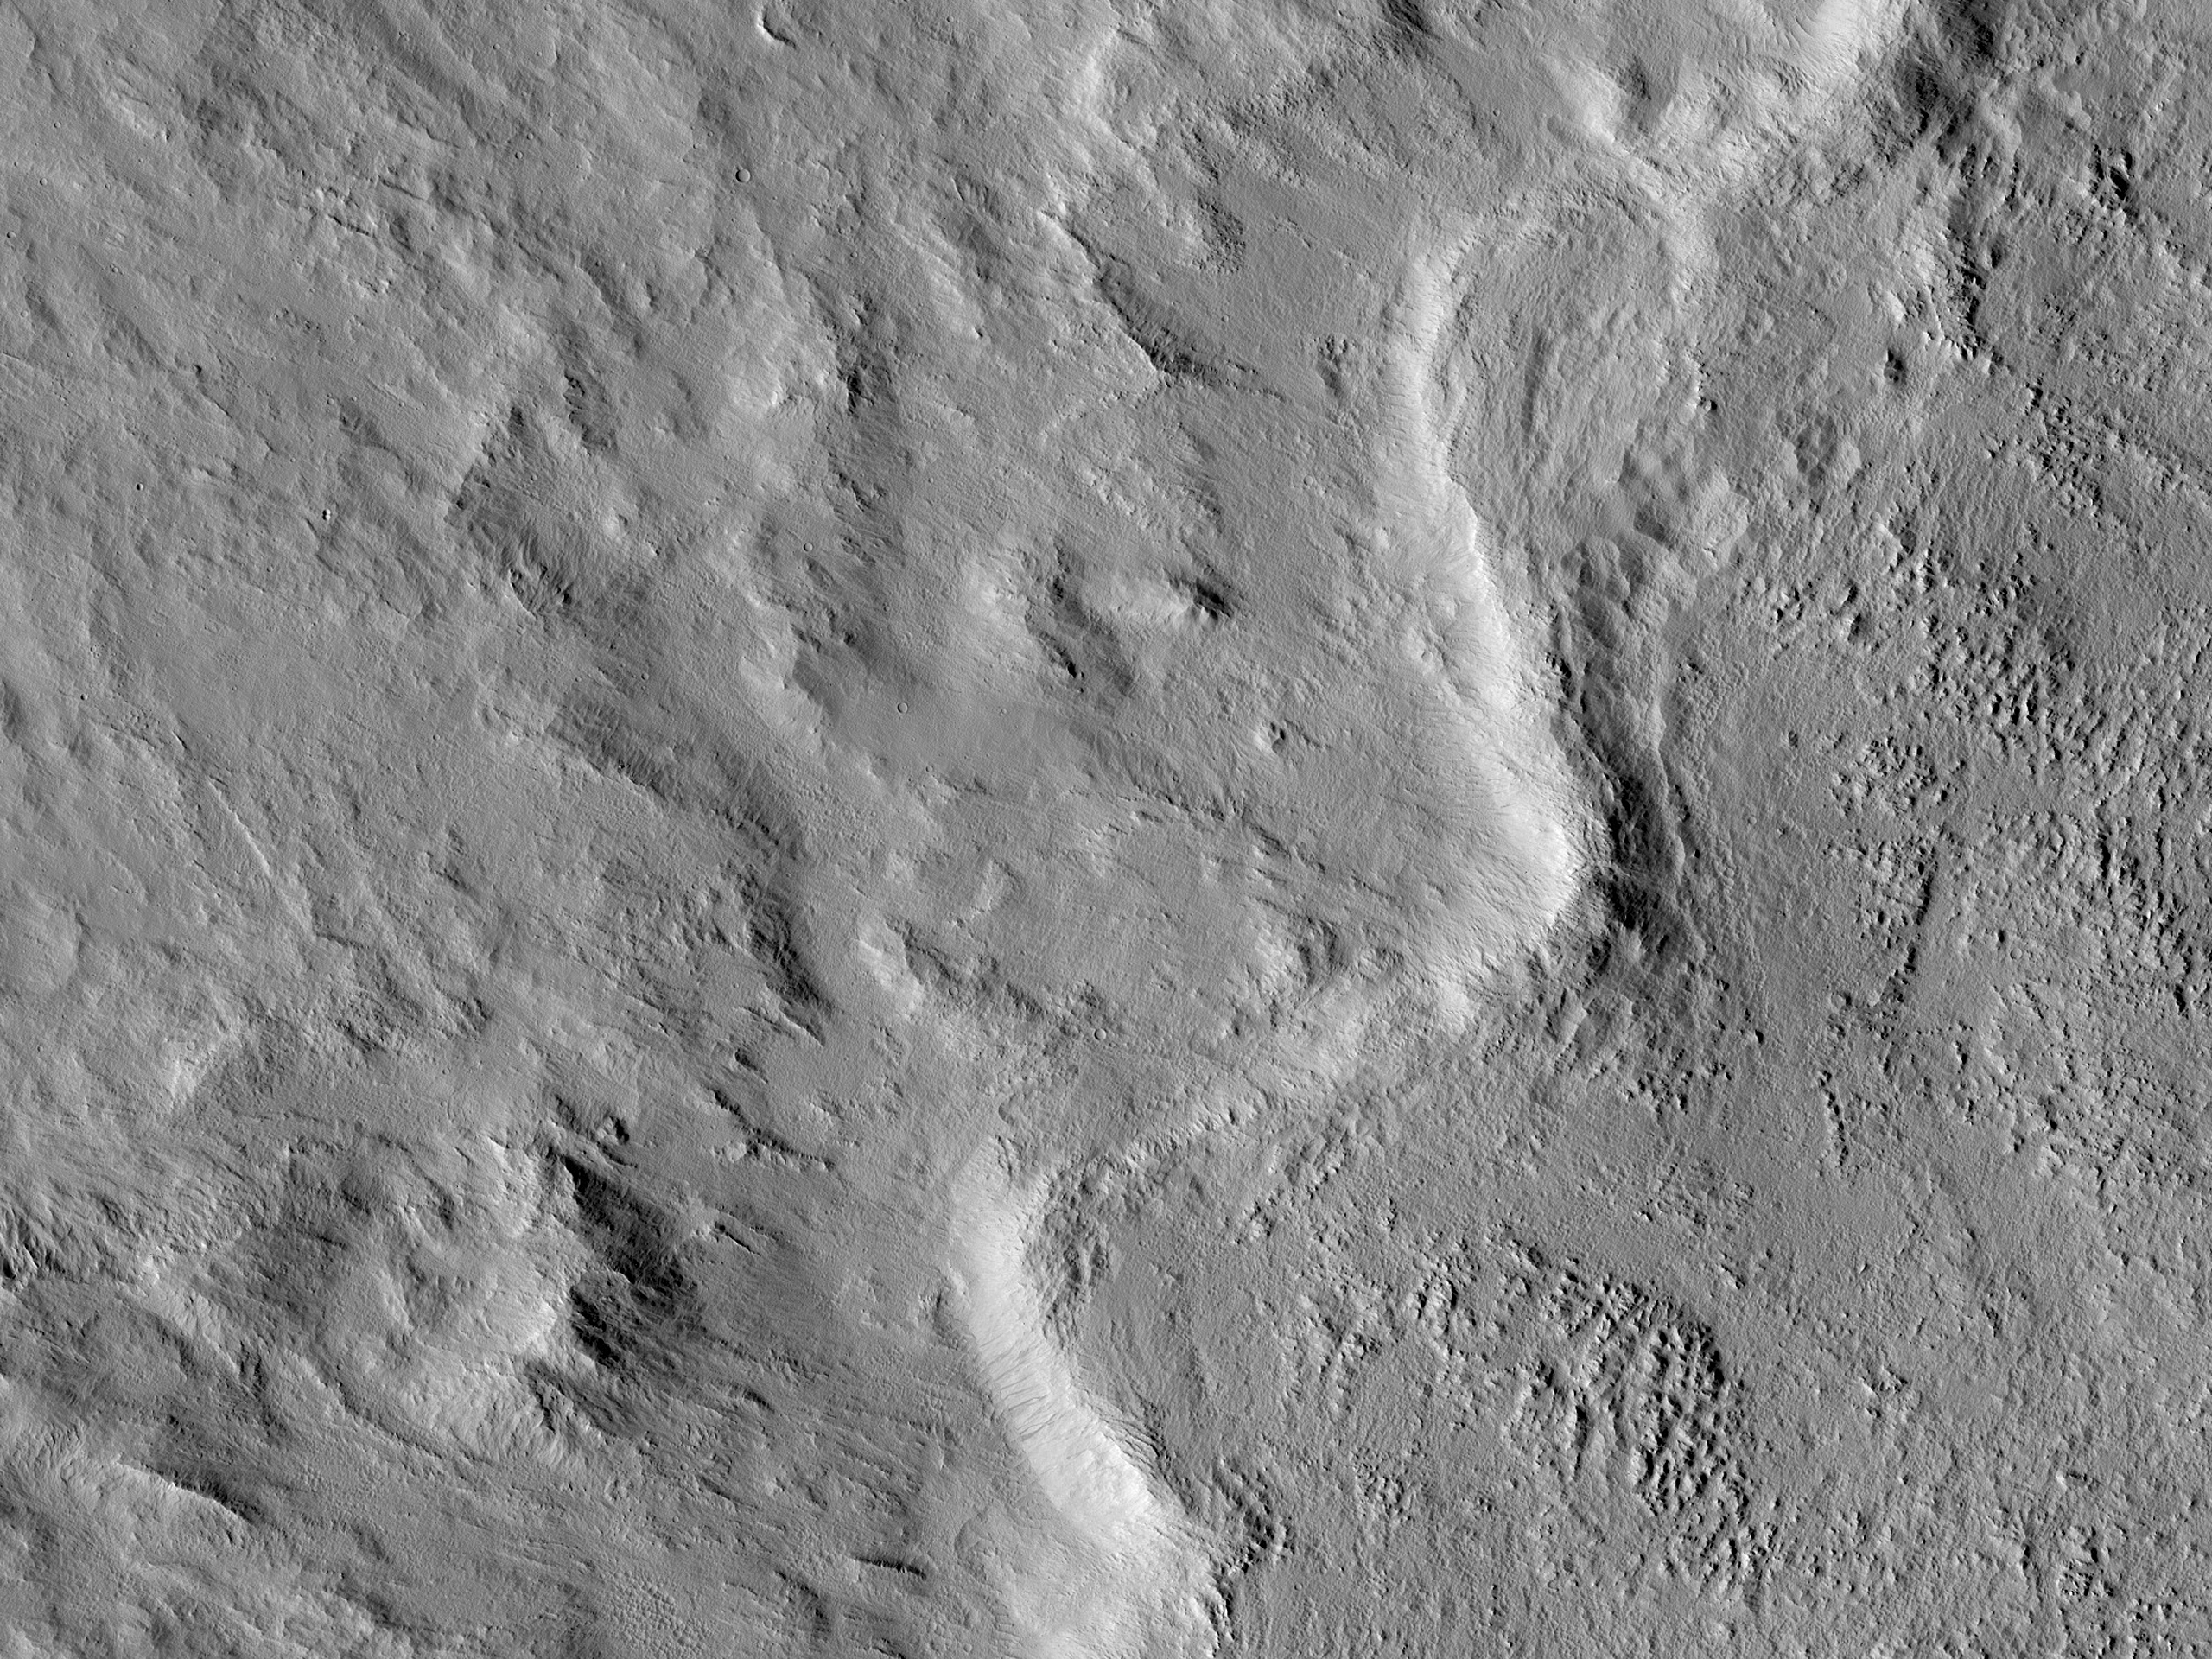 The Layered Ejecta of Canala Crater